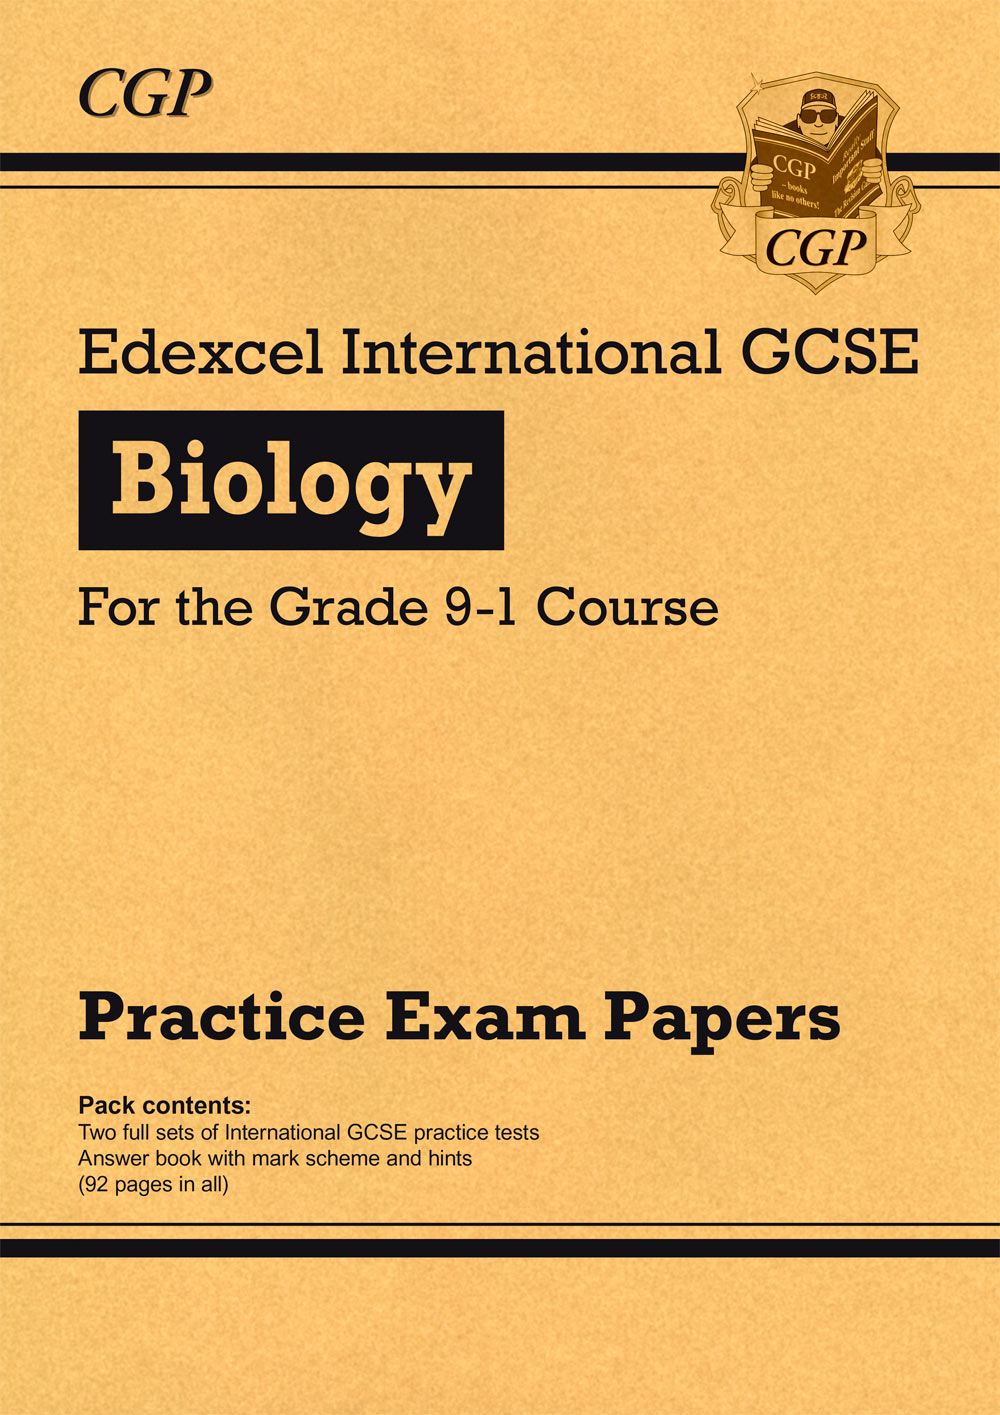 BEHPI41 - New Edexcel International GCSE Biology Practice Papers - for the Grade 9-1 Course